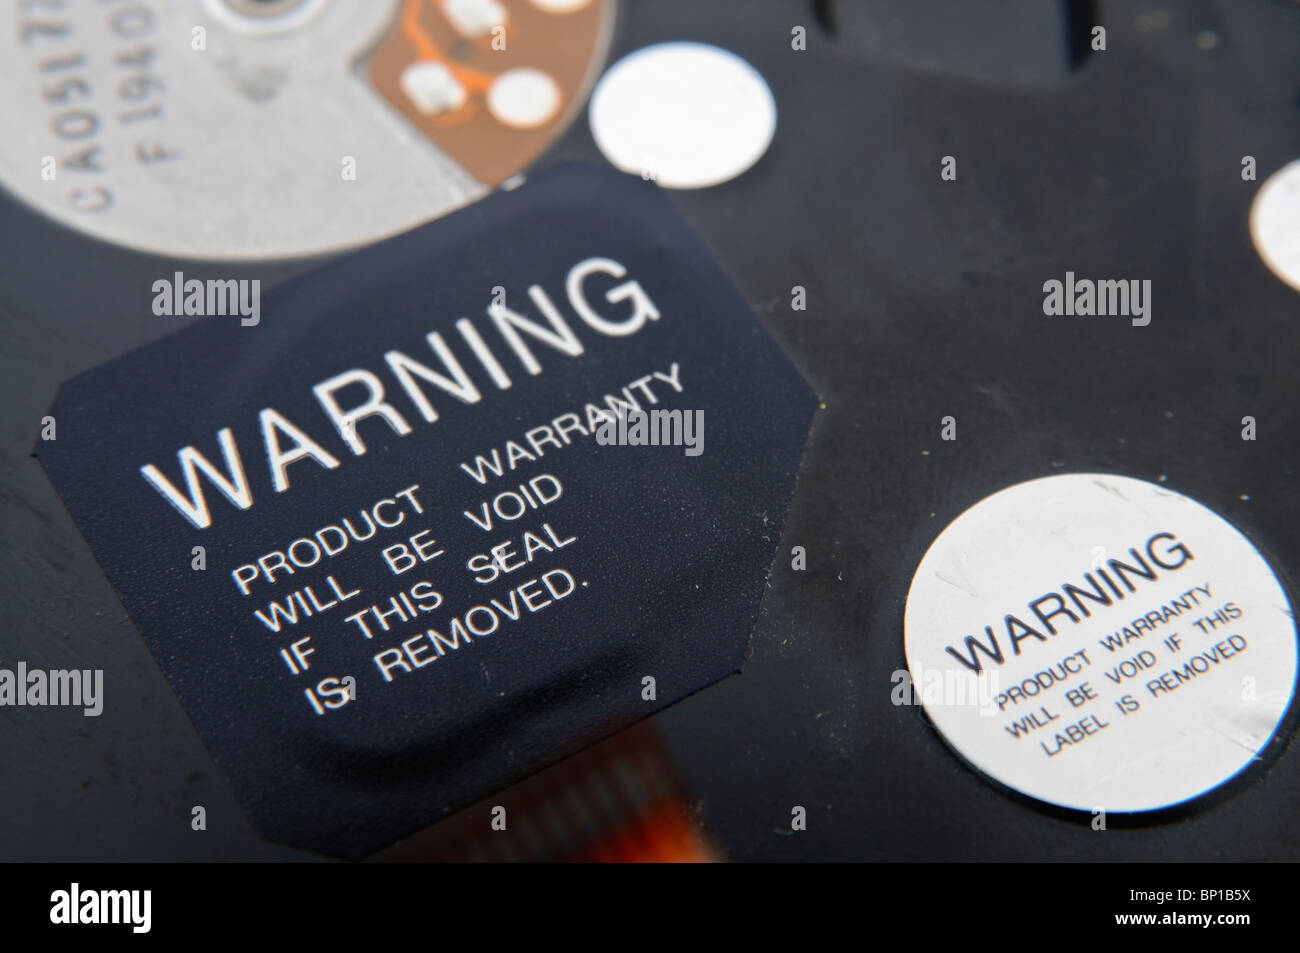 Label on the outside of a hard disk drive 'Warning. Product warranty will be void if this seal is removed' - Stock Image